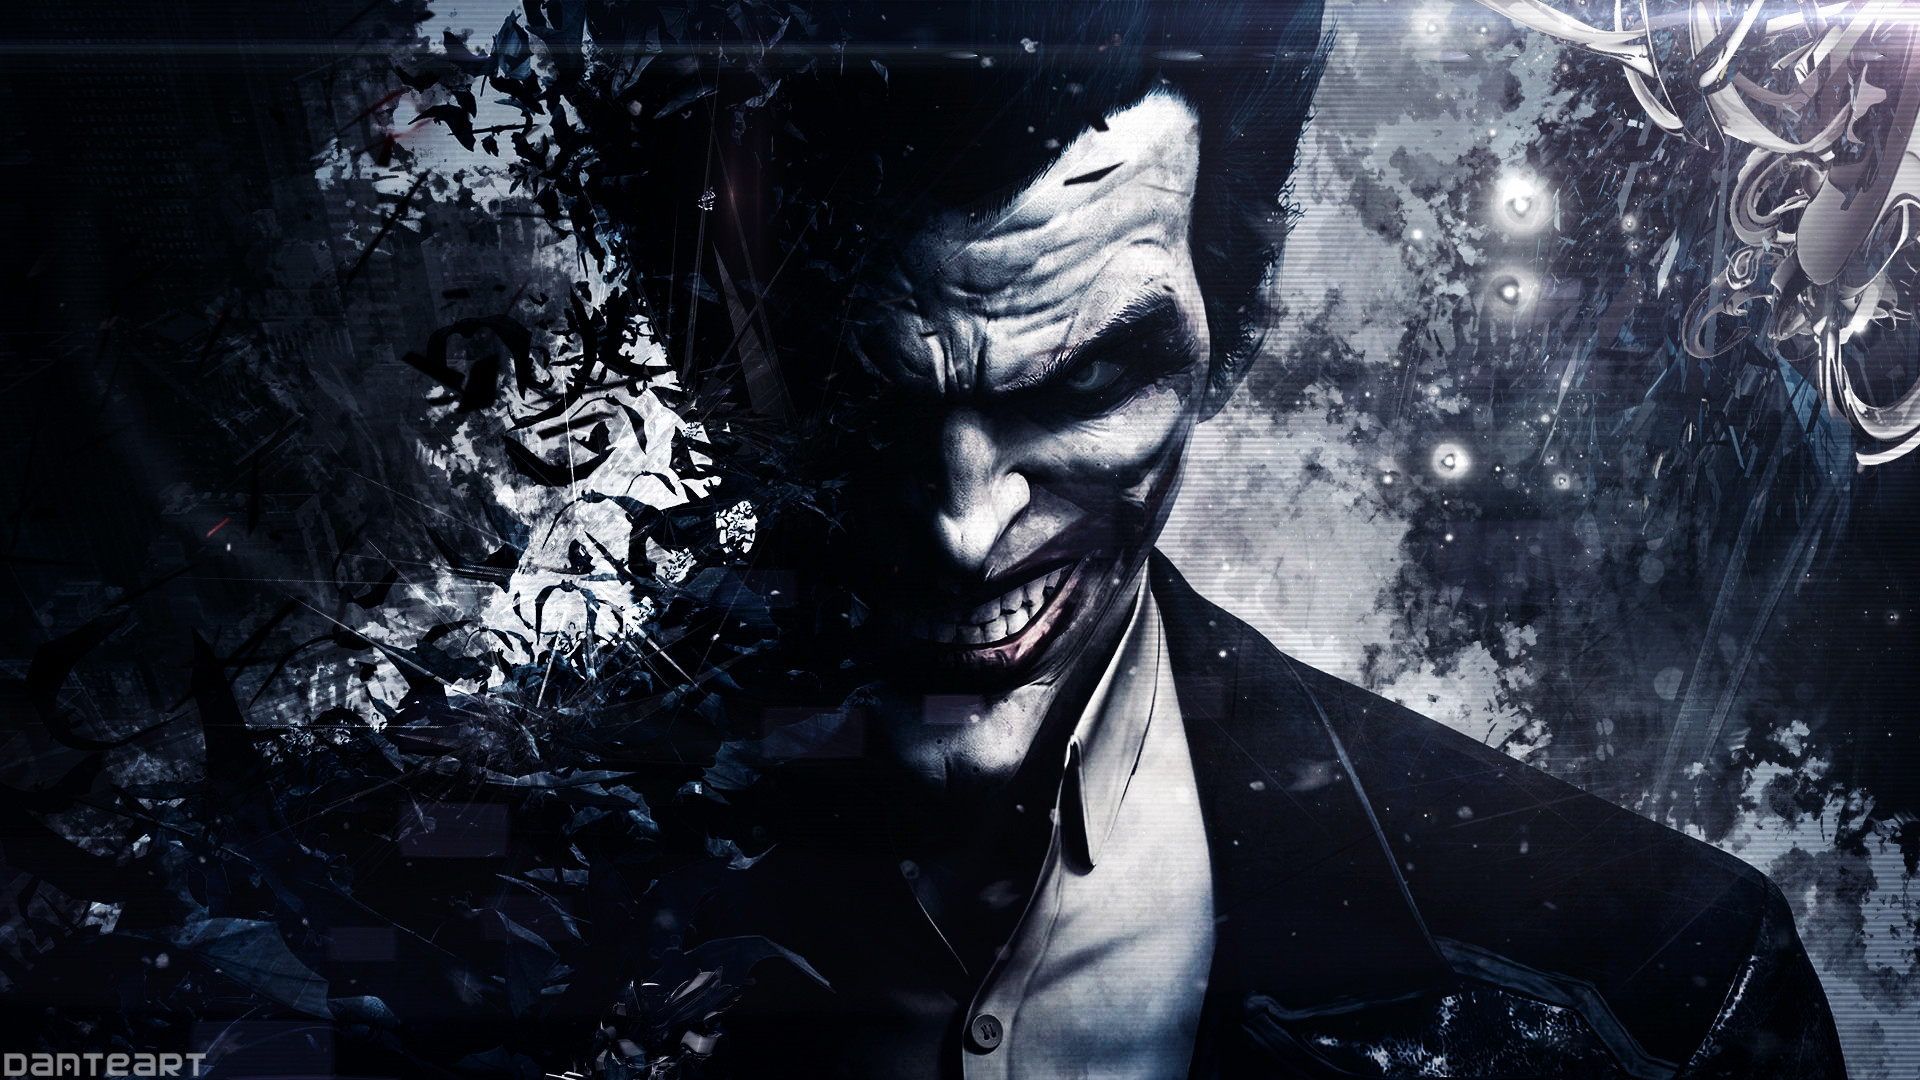 … Download Free 85 Joker Wallpaper (The Dark Knight) The Quotes Land .